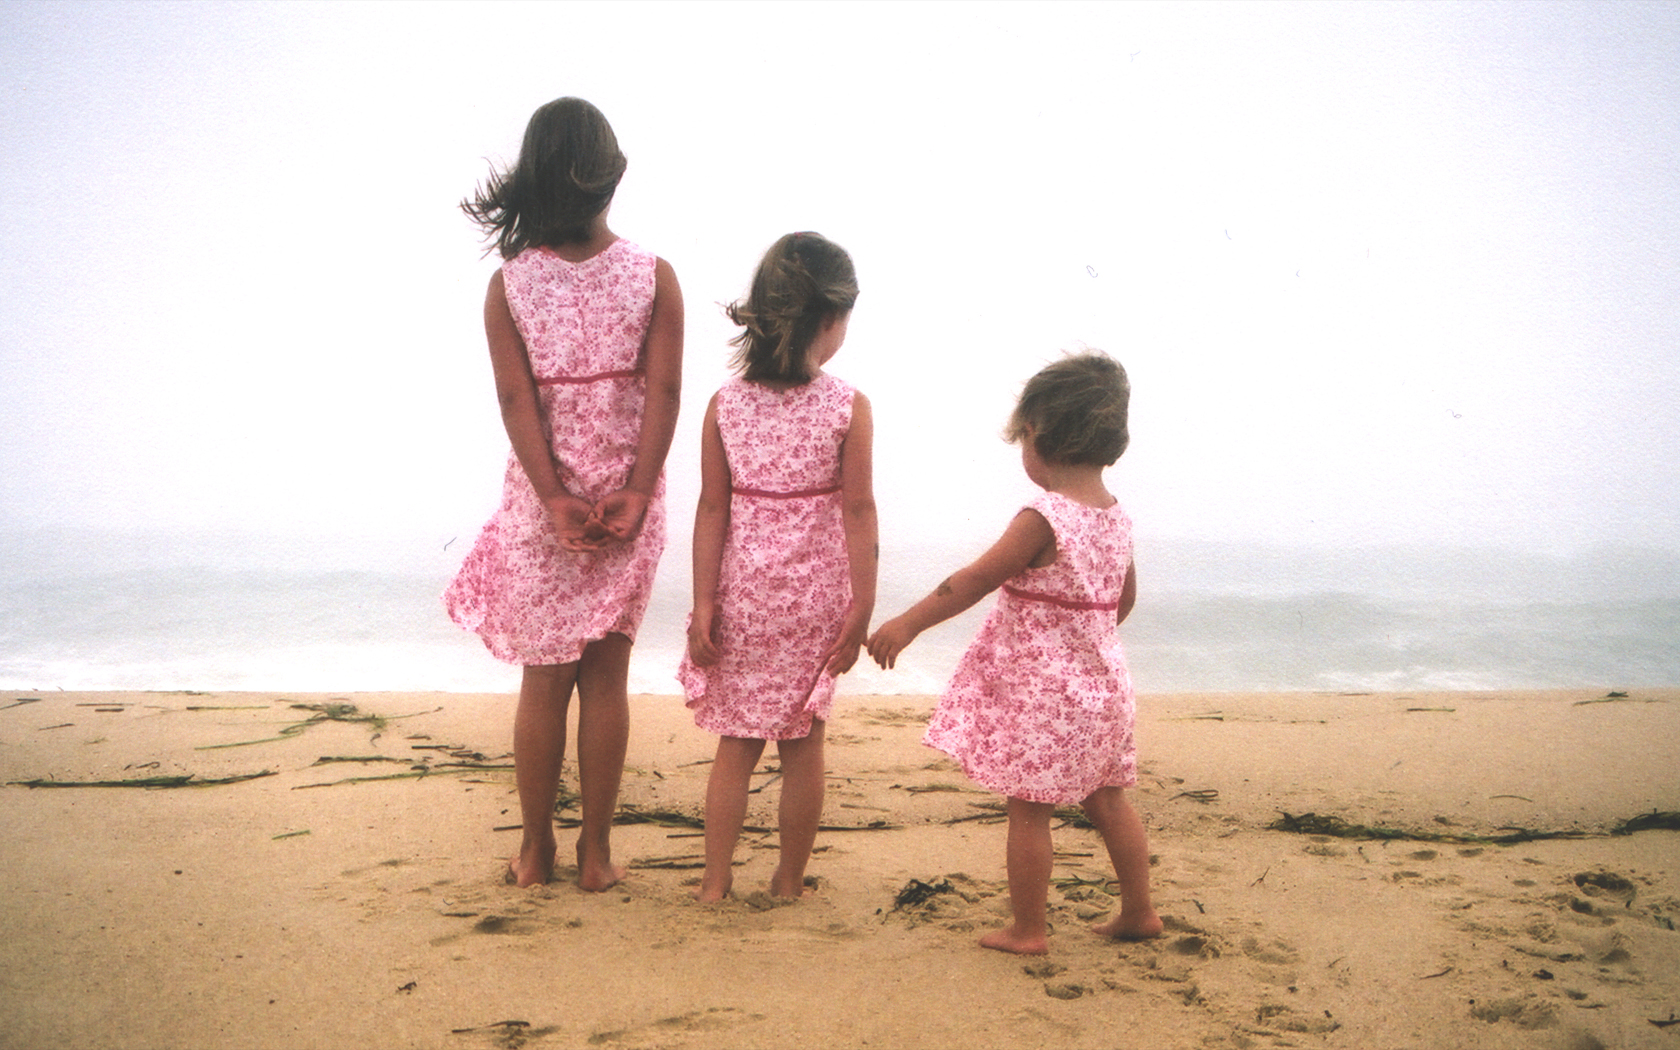 Three sisters on a beach